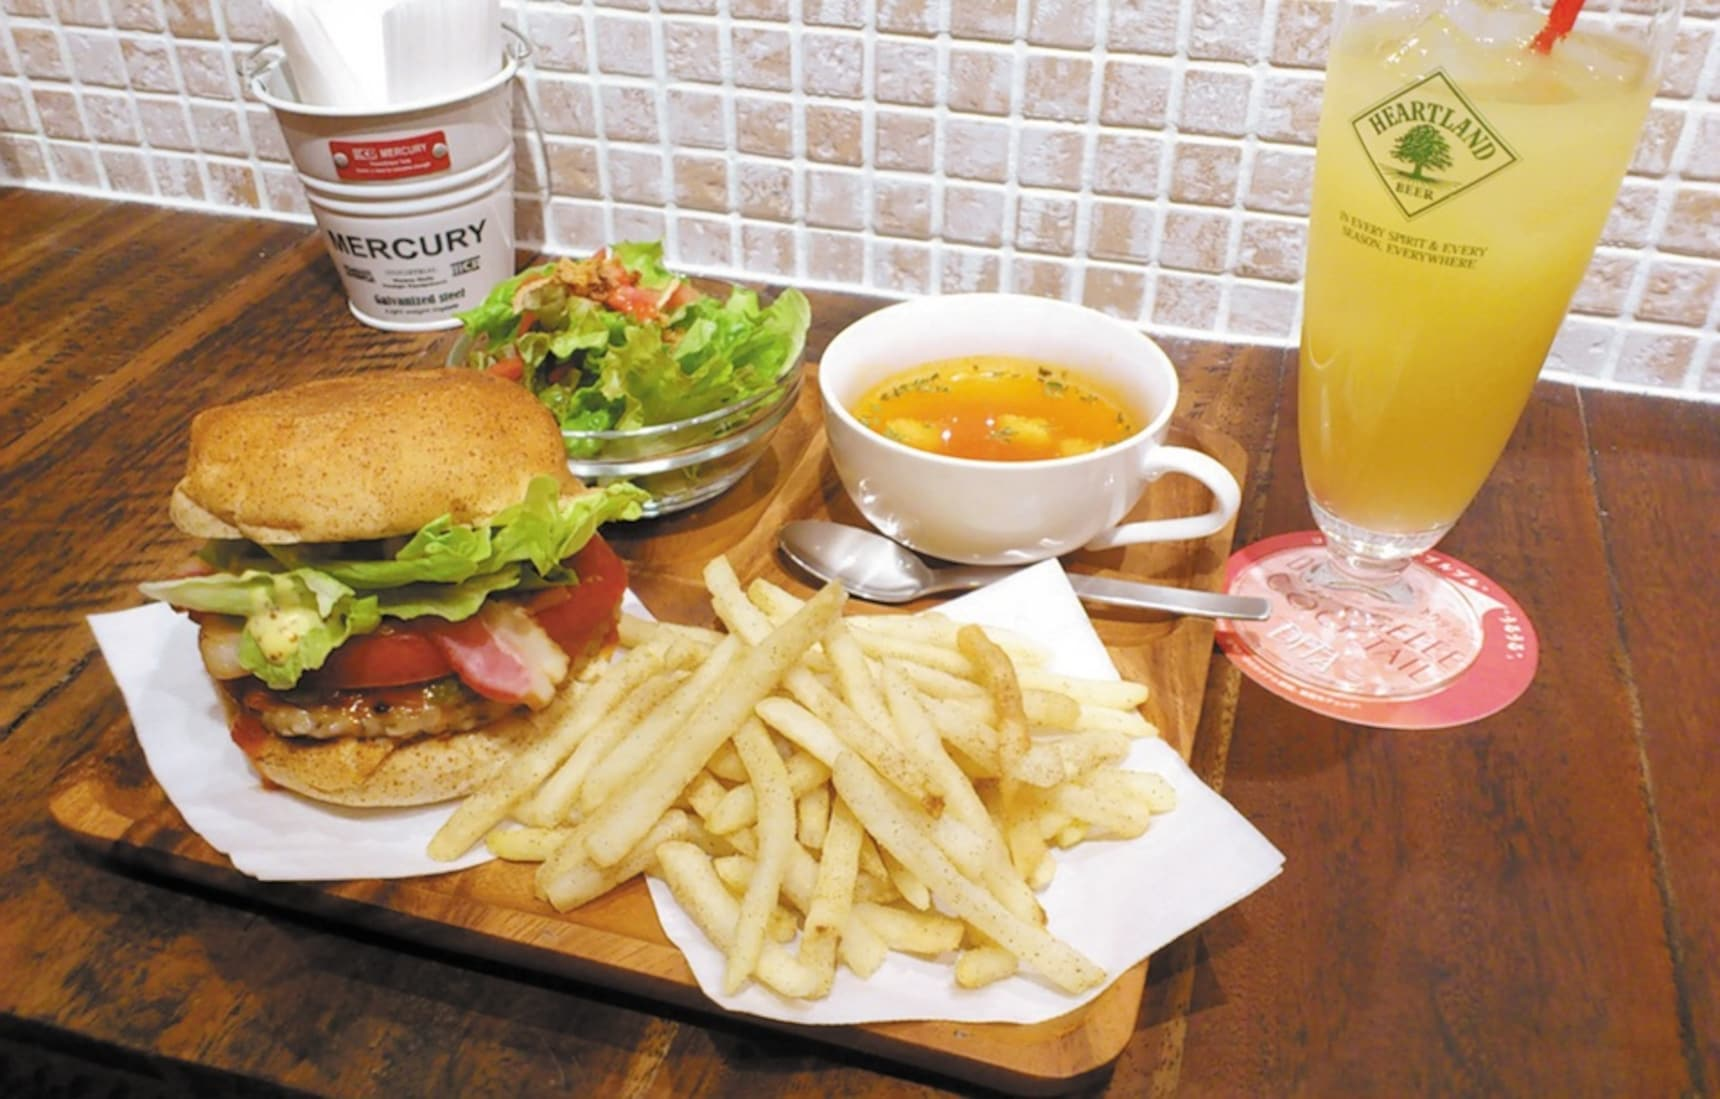 The 5 Best Burgers in the Tokai Area